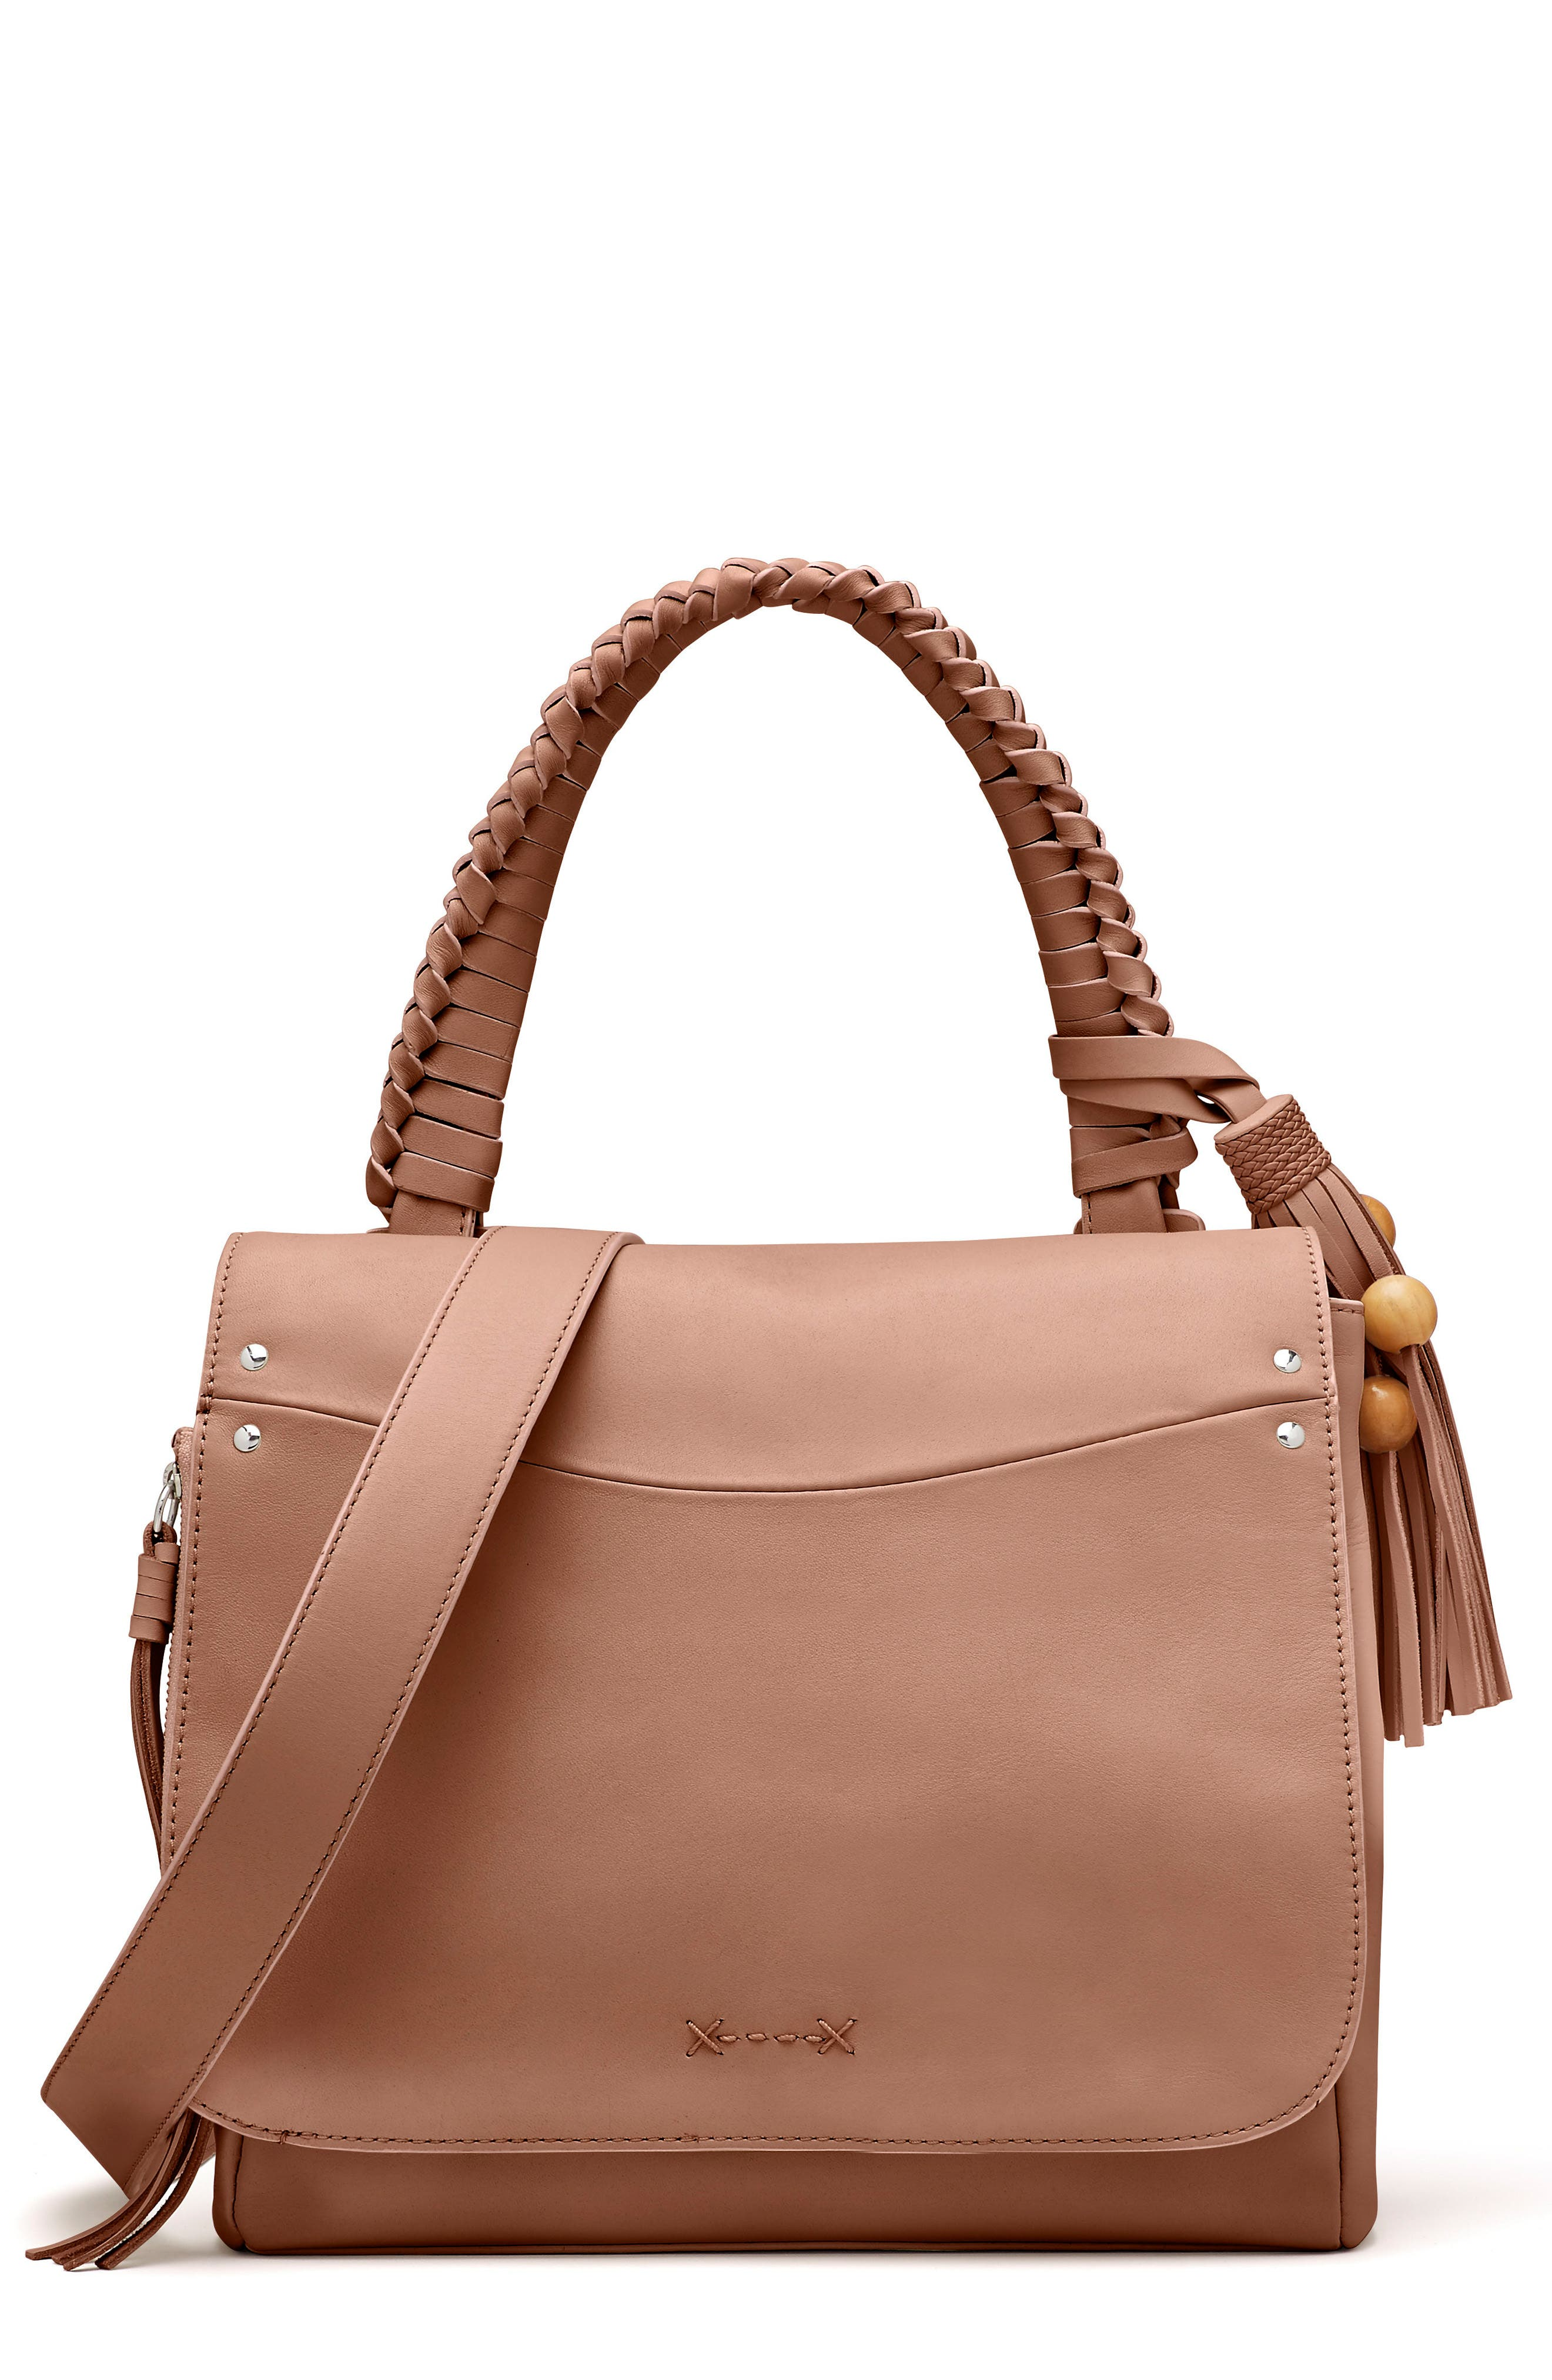 Alternate Image 1 Selected - Elizabeth and James Trapeze Leather Top Handle Satchel